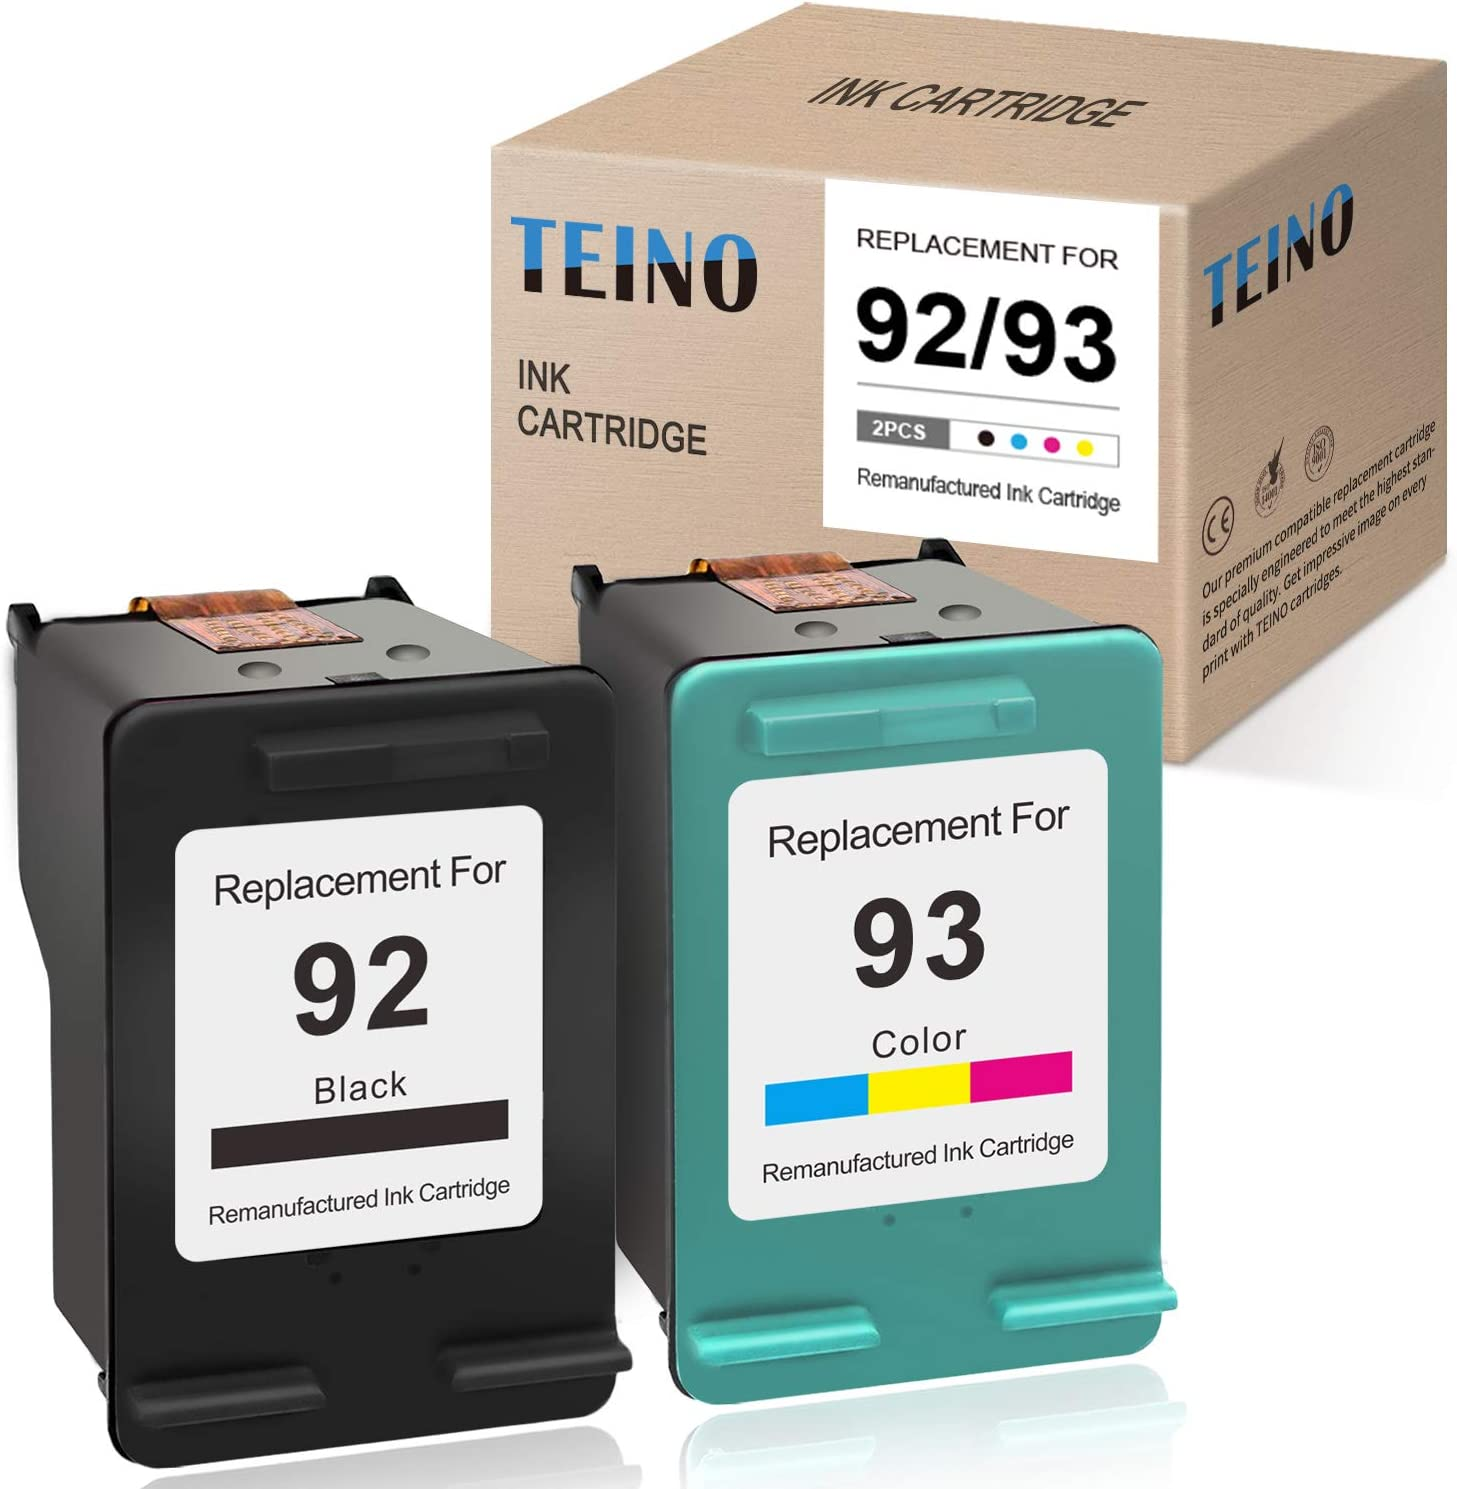 TEINO Remanufactured Ink Cartridge Replacement for HP 92 93 use with HP Photosmart C3180 C3100 C3140 C3150 C3190 7850 PSC 1510 1507 OfficeJet 6310 6310XI DeskJet 5440 5420 (Black, Tri-Color, 2-Pack)